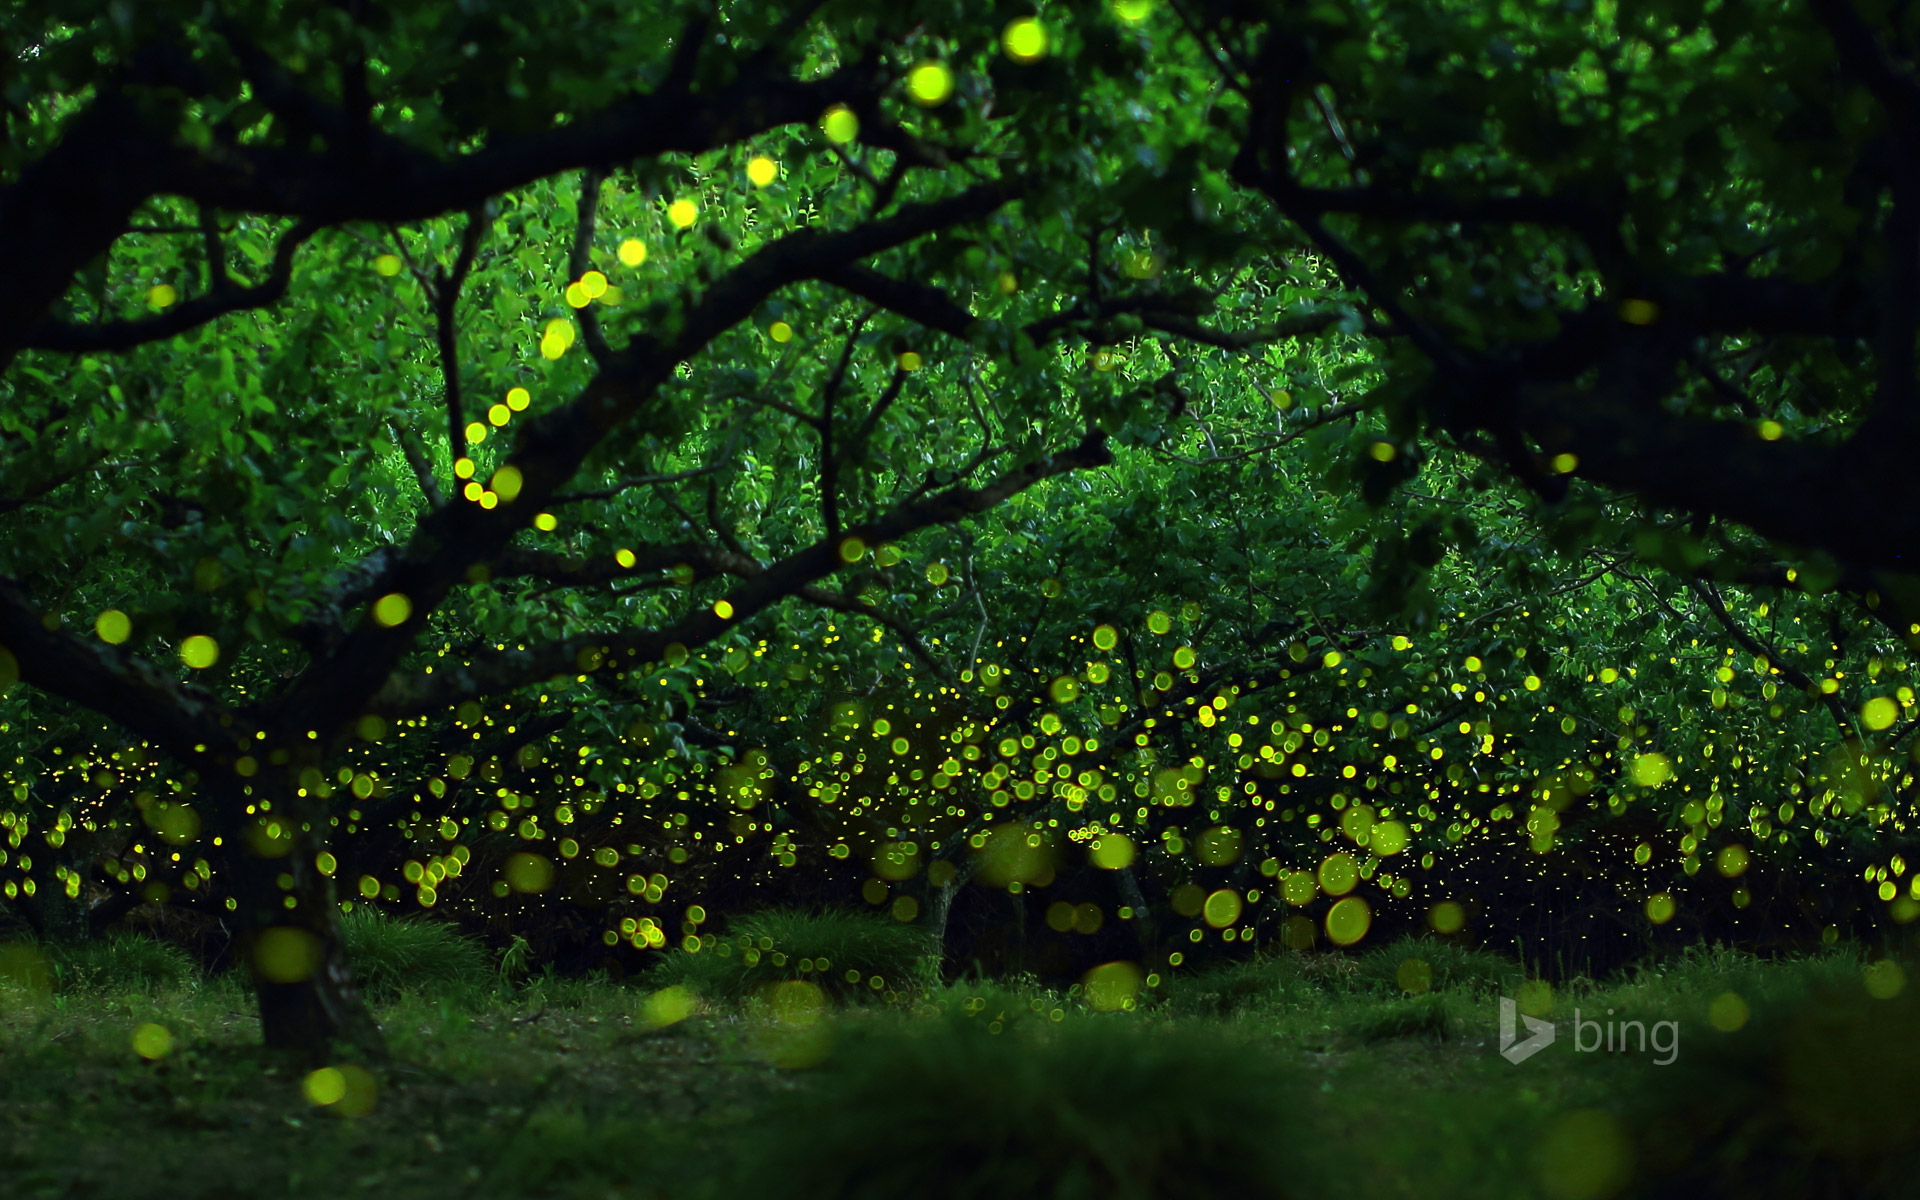 Long-exposure photograph of fireflies in a forested area near Nagoya, Japan